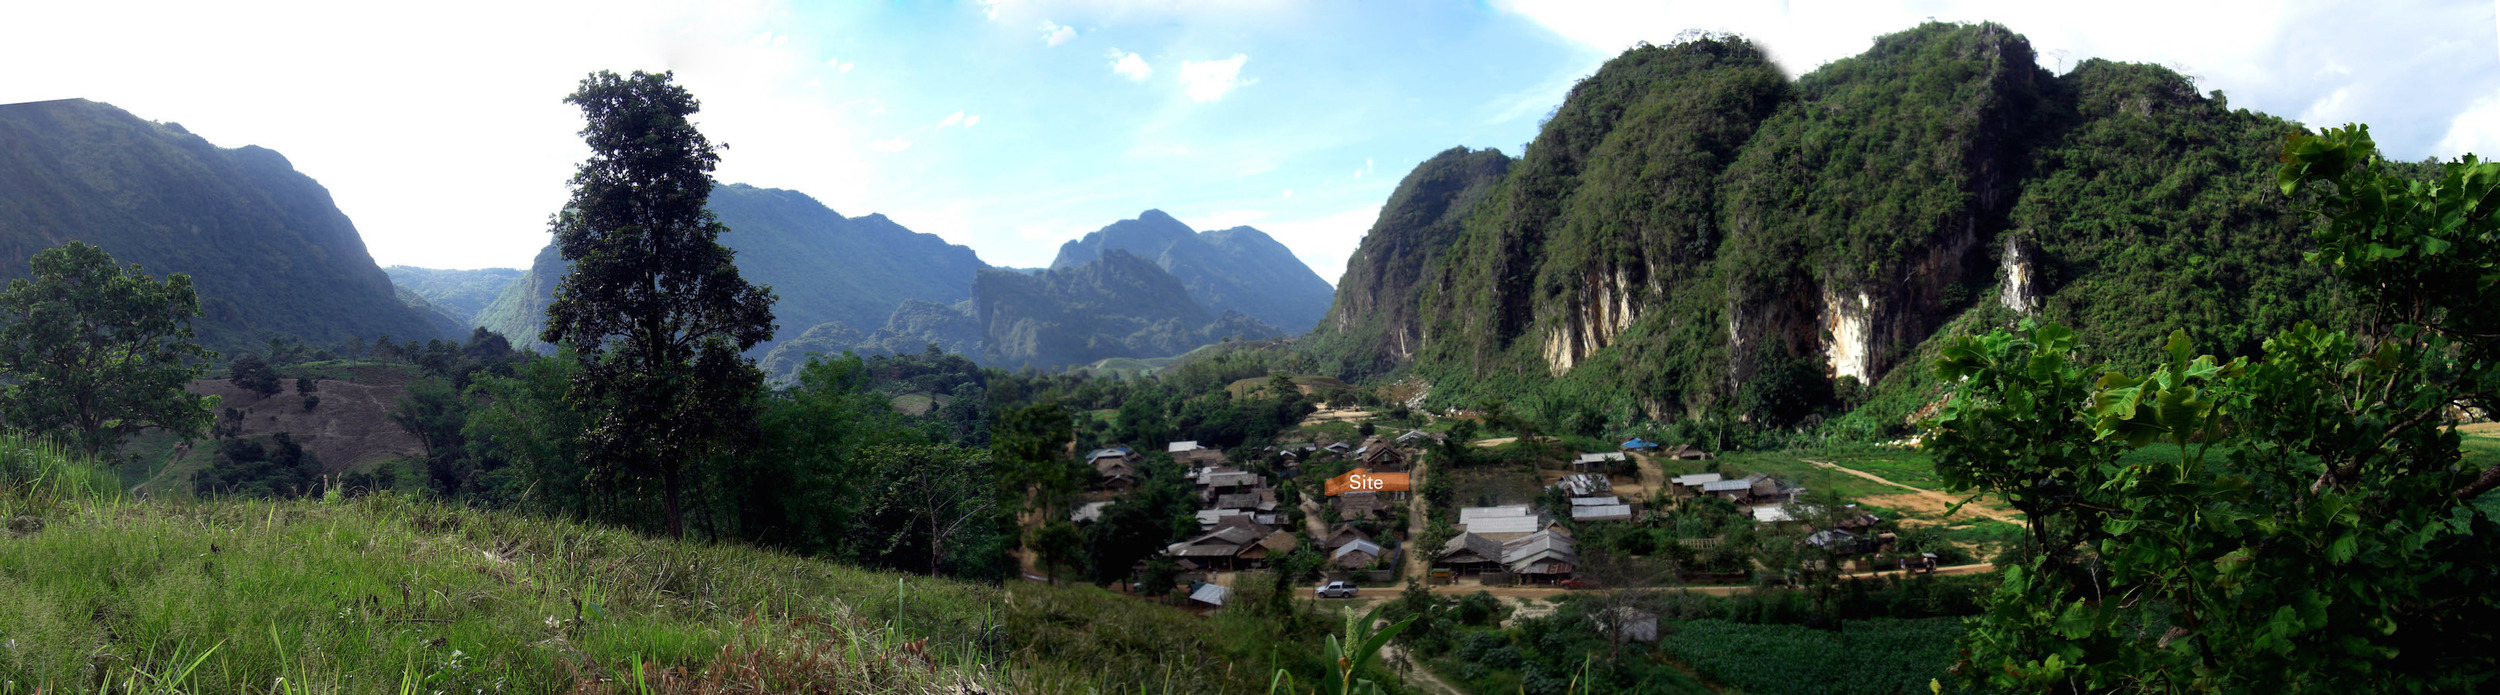 Akha_Village_5site.jpg